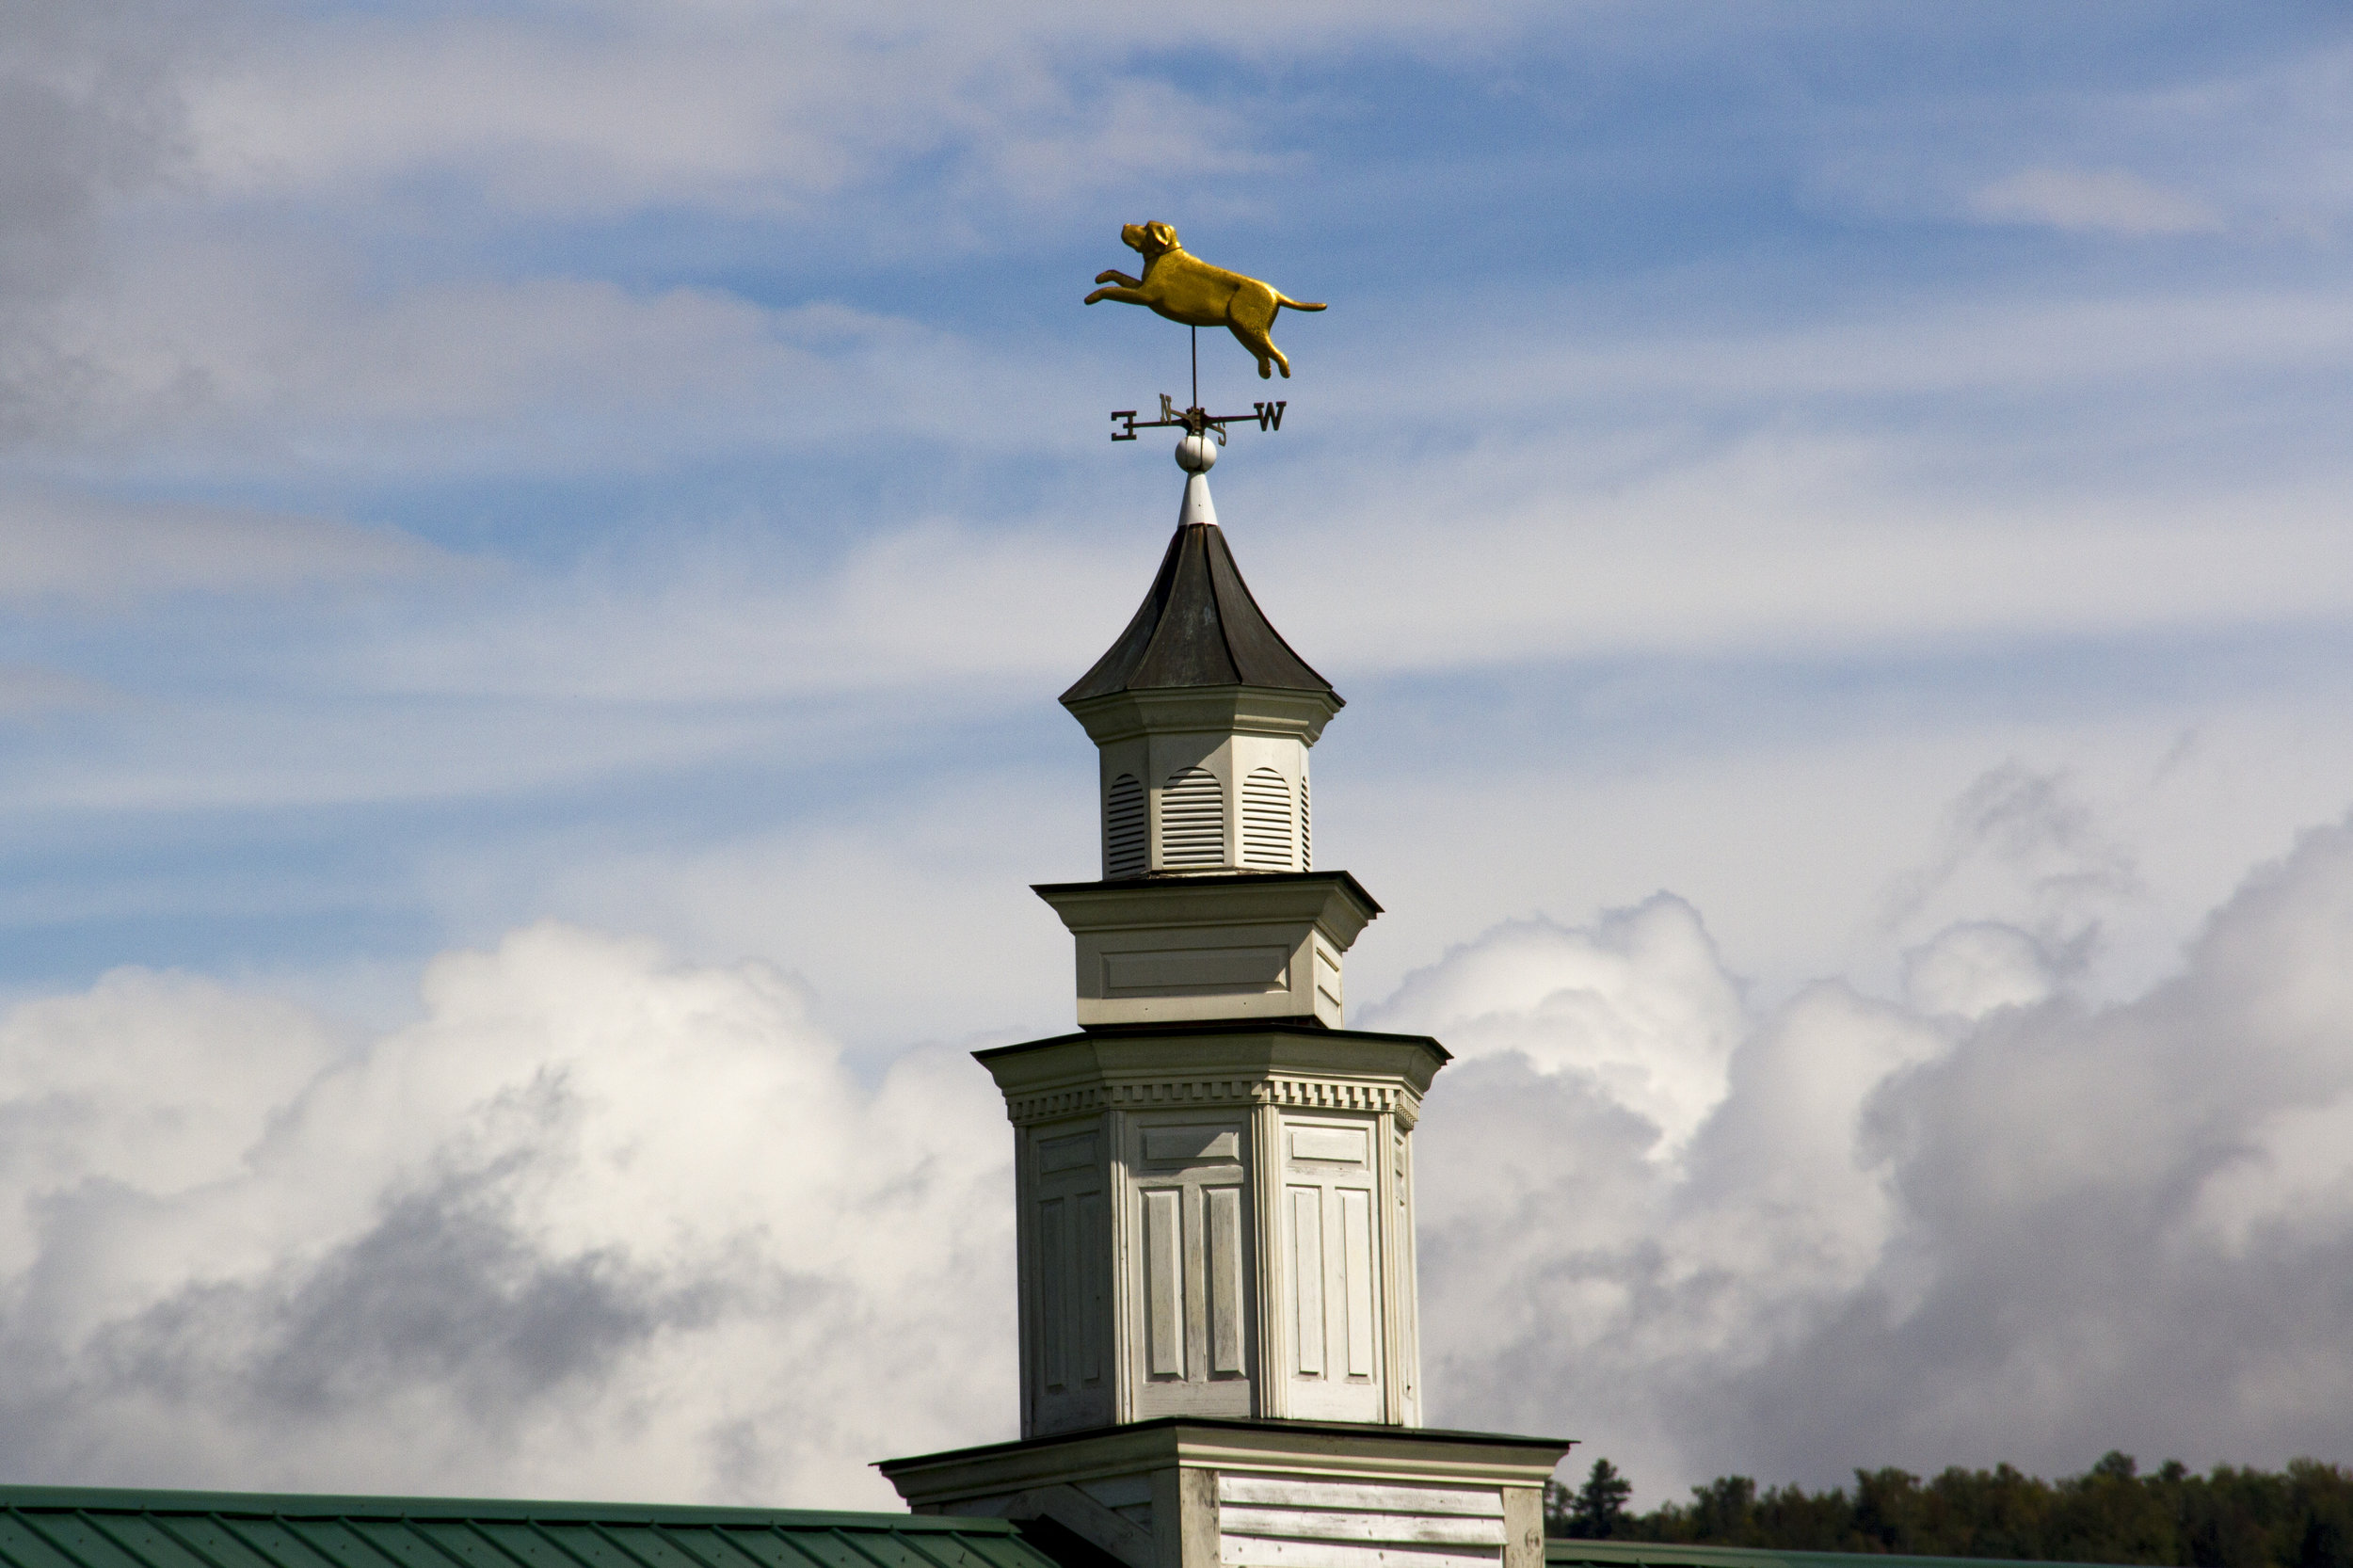 A weather vane on top of the cupola depicts a golden jumping dog,backdropped by blue sky and fluffy clouds.